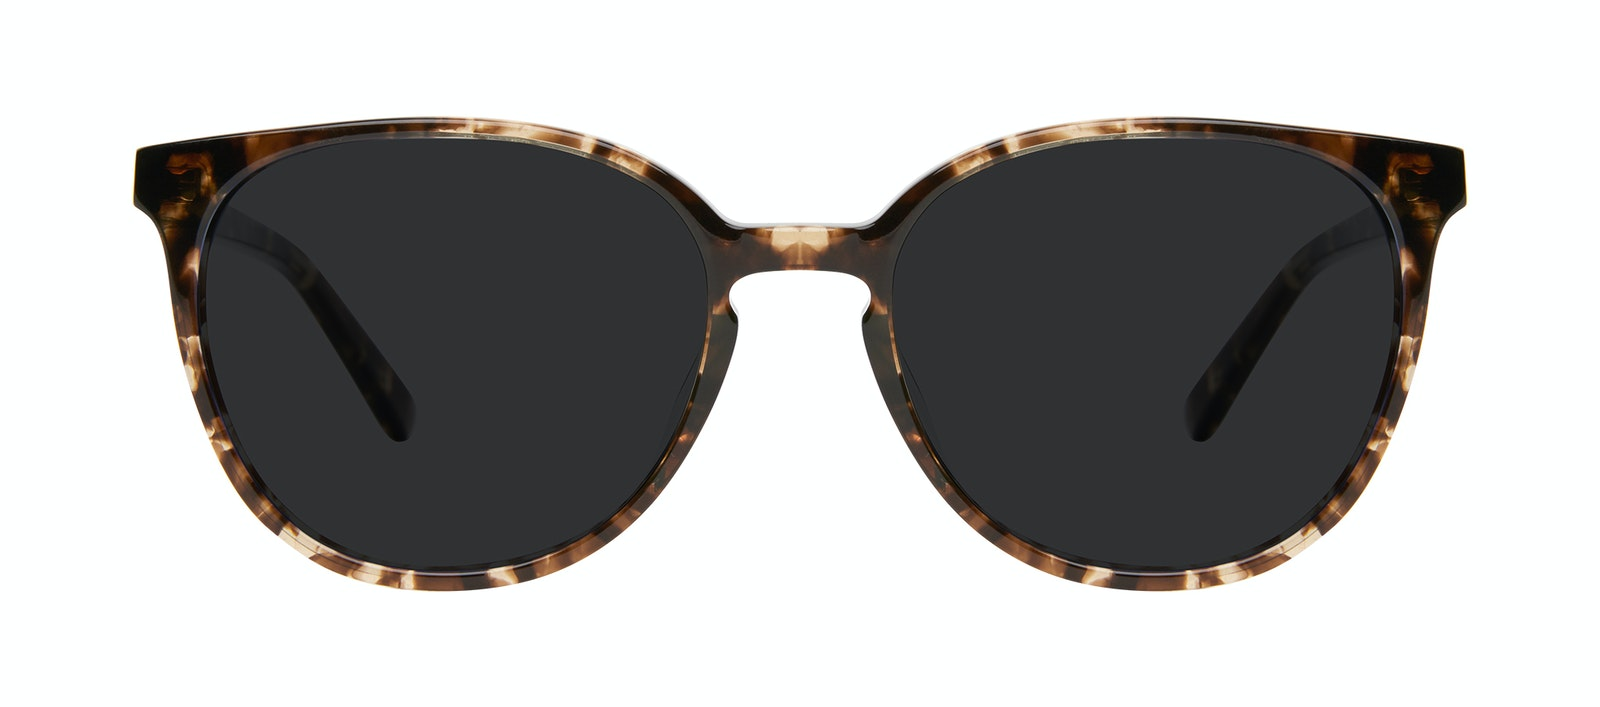 Affordable Fashion Glasses Round Sunglasses Women Impression Leopard Front